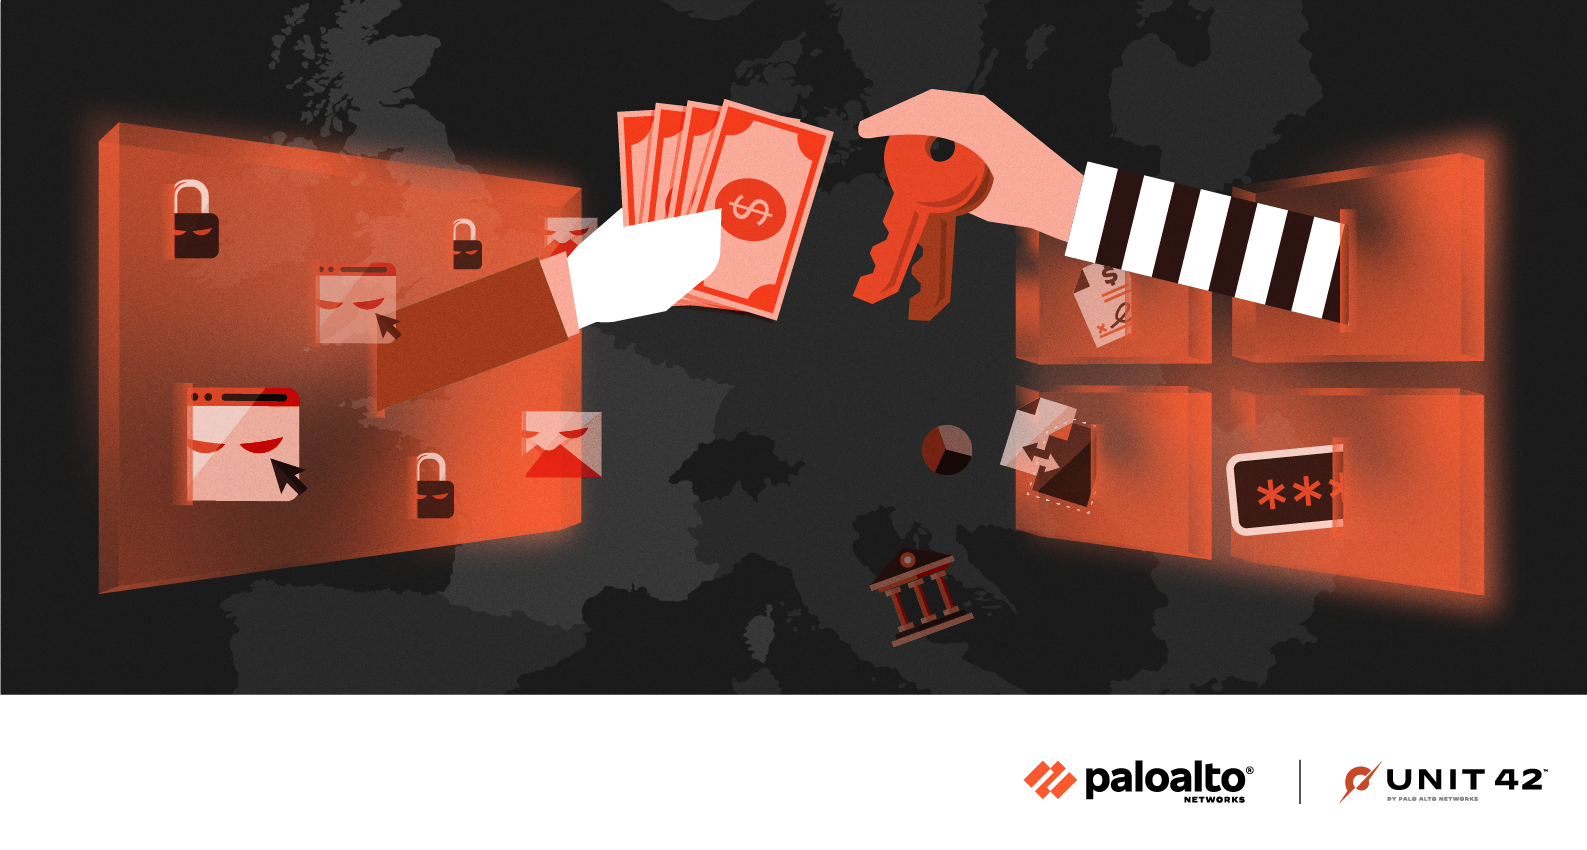 A conceptual image representing ransomware, including the emerging ransomware groups covered here: AvosLocker, Hive, HelloKitty and LockBit 2.0.